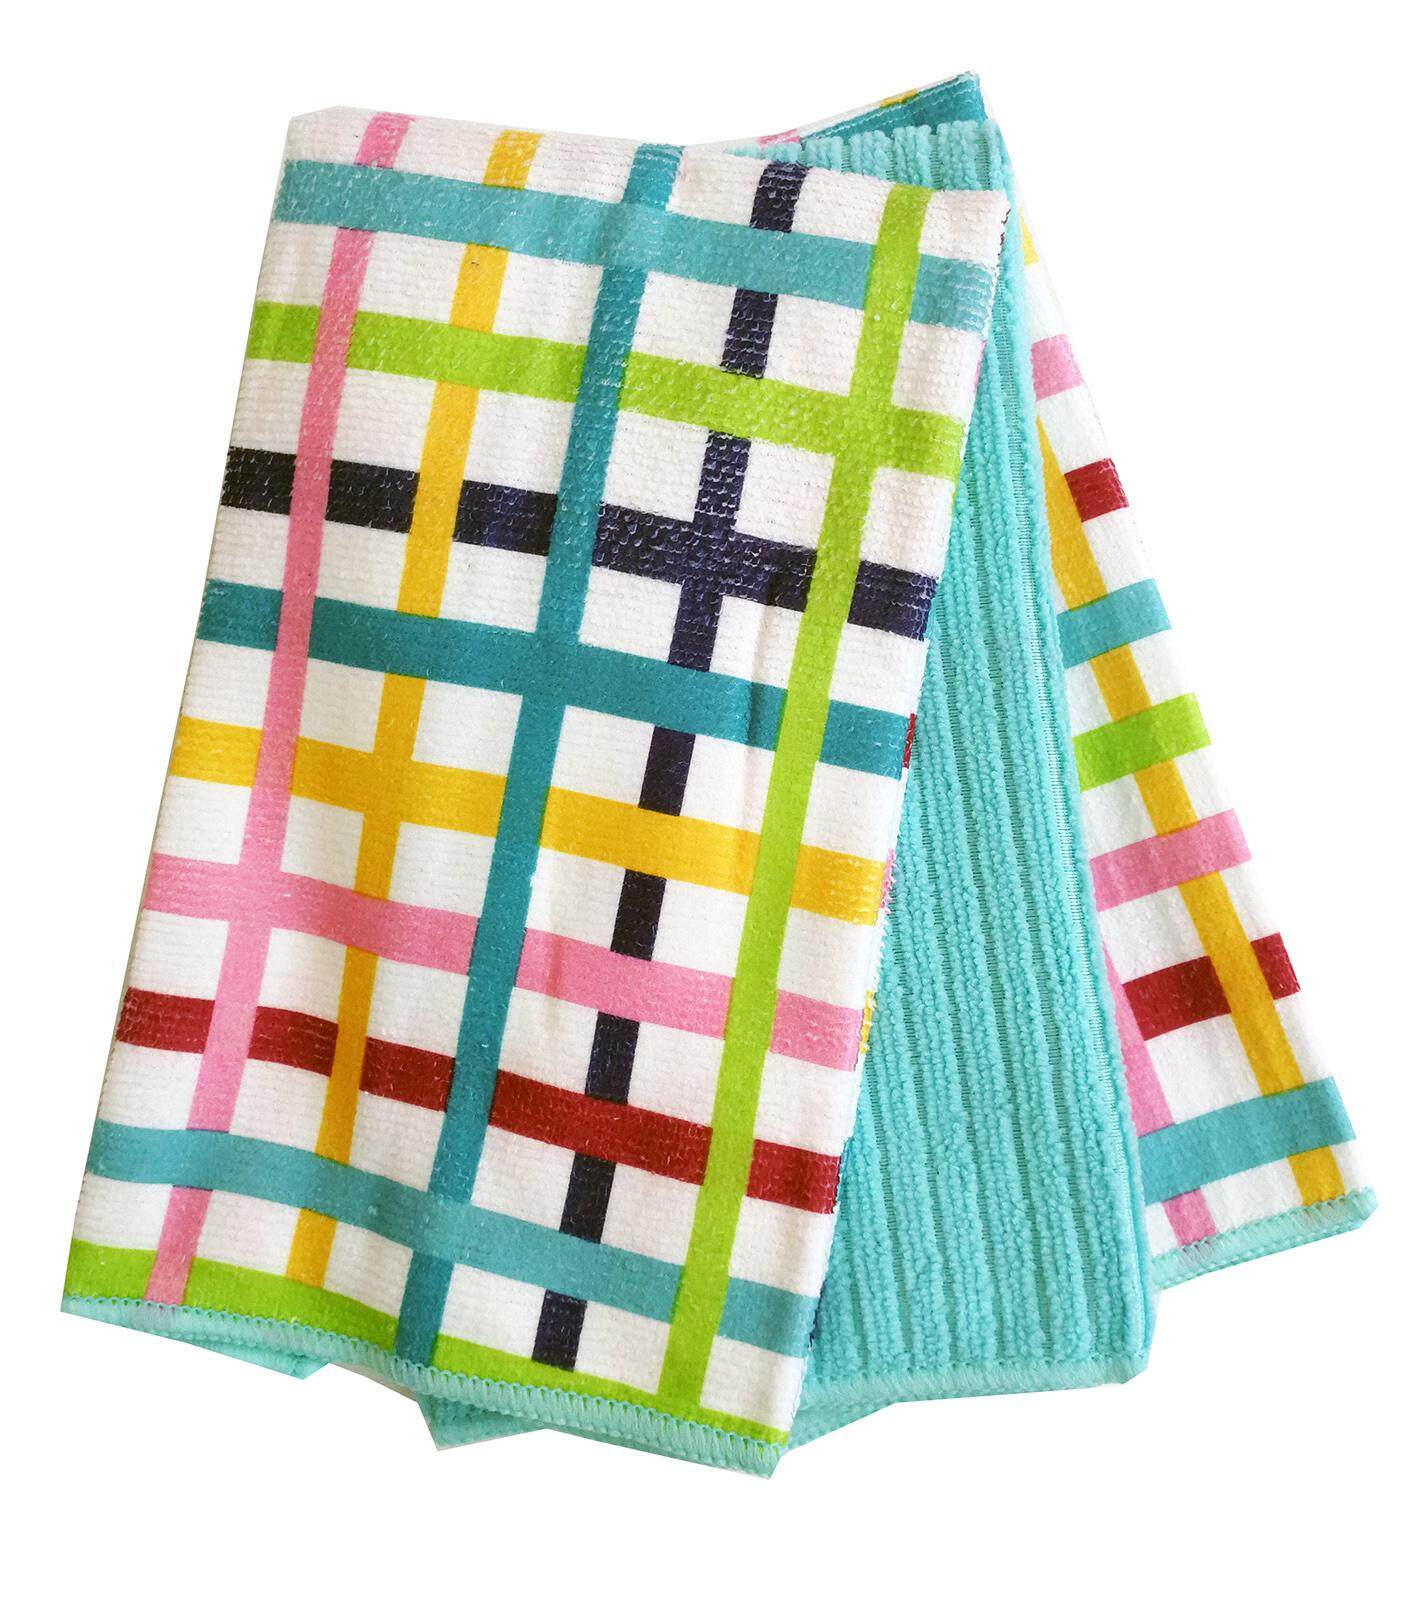 Home Dish Cloth & Towels - Buy Home Dish Cloth & Towels at Best ...